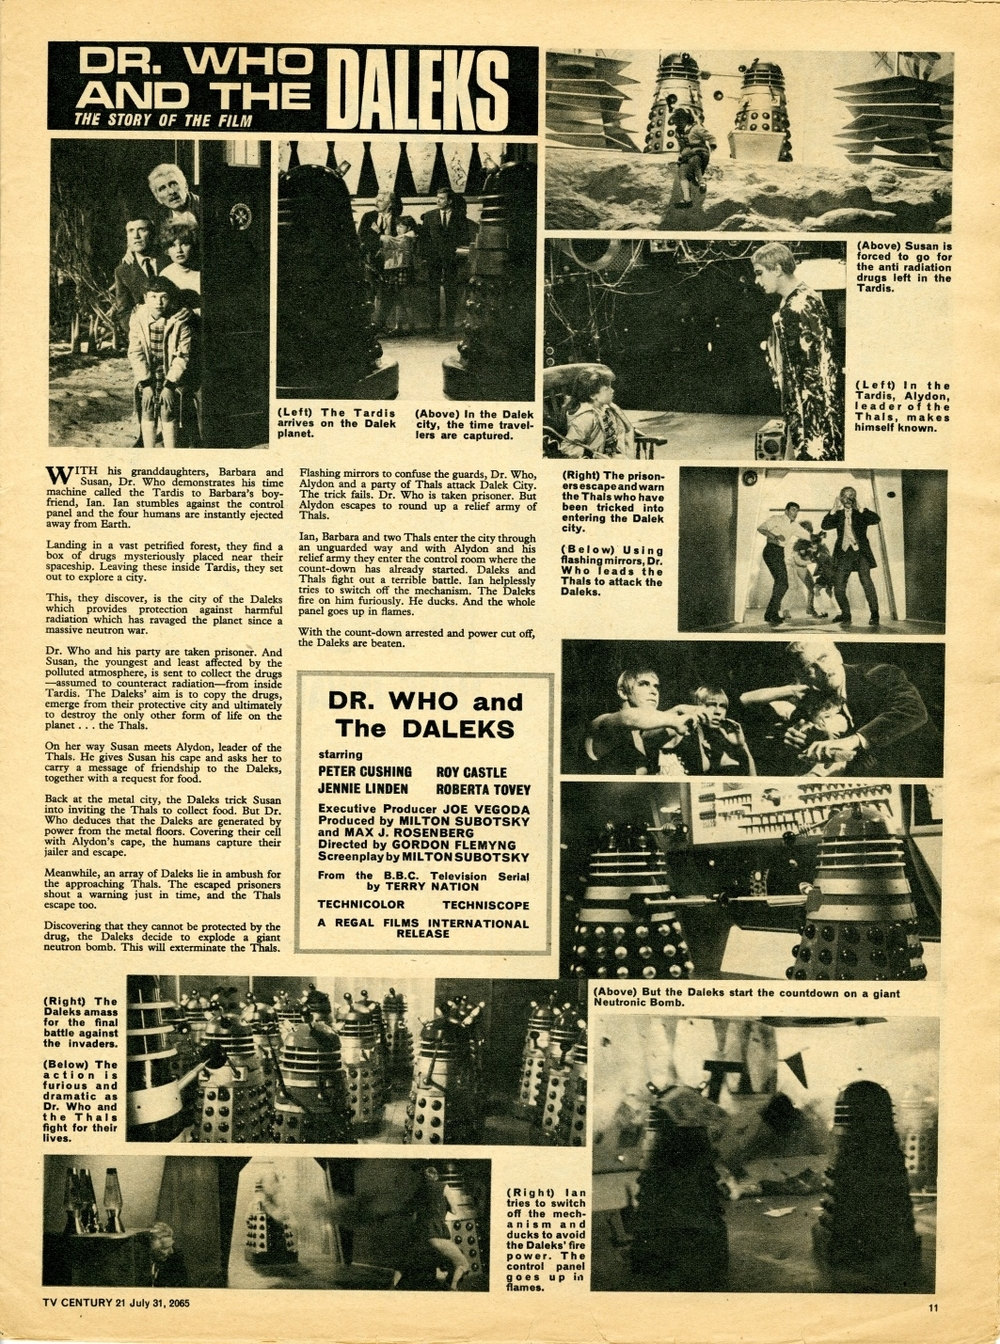 TV Century 21 no. 28, The Story of the Film, 31 July 2065 (1965)